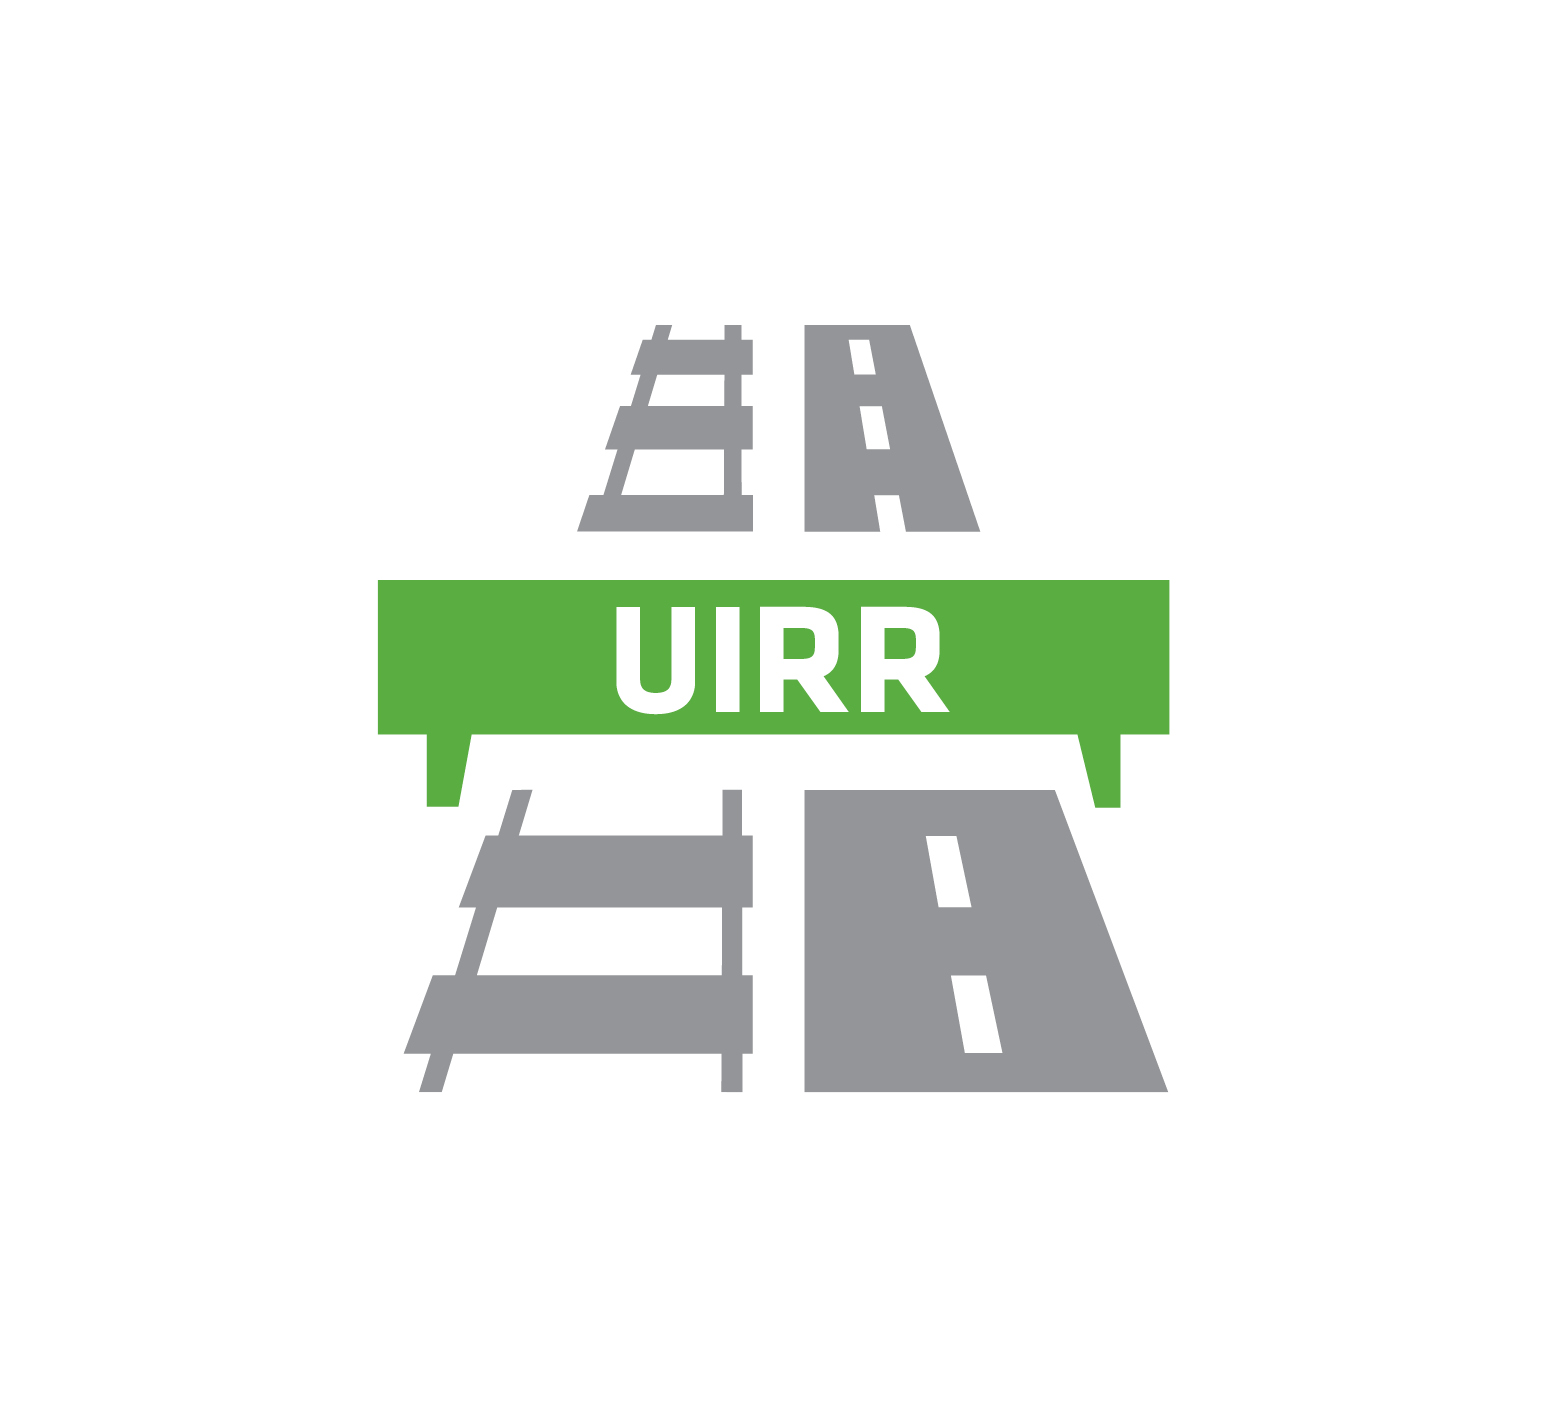 International Union for Road-Rail Combined Transport (UIRR)